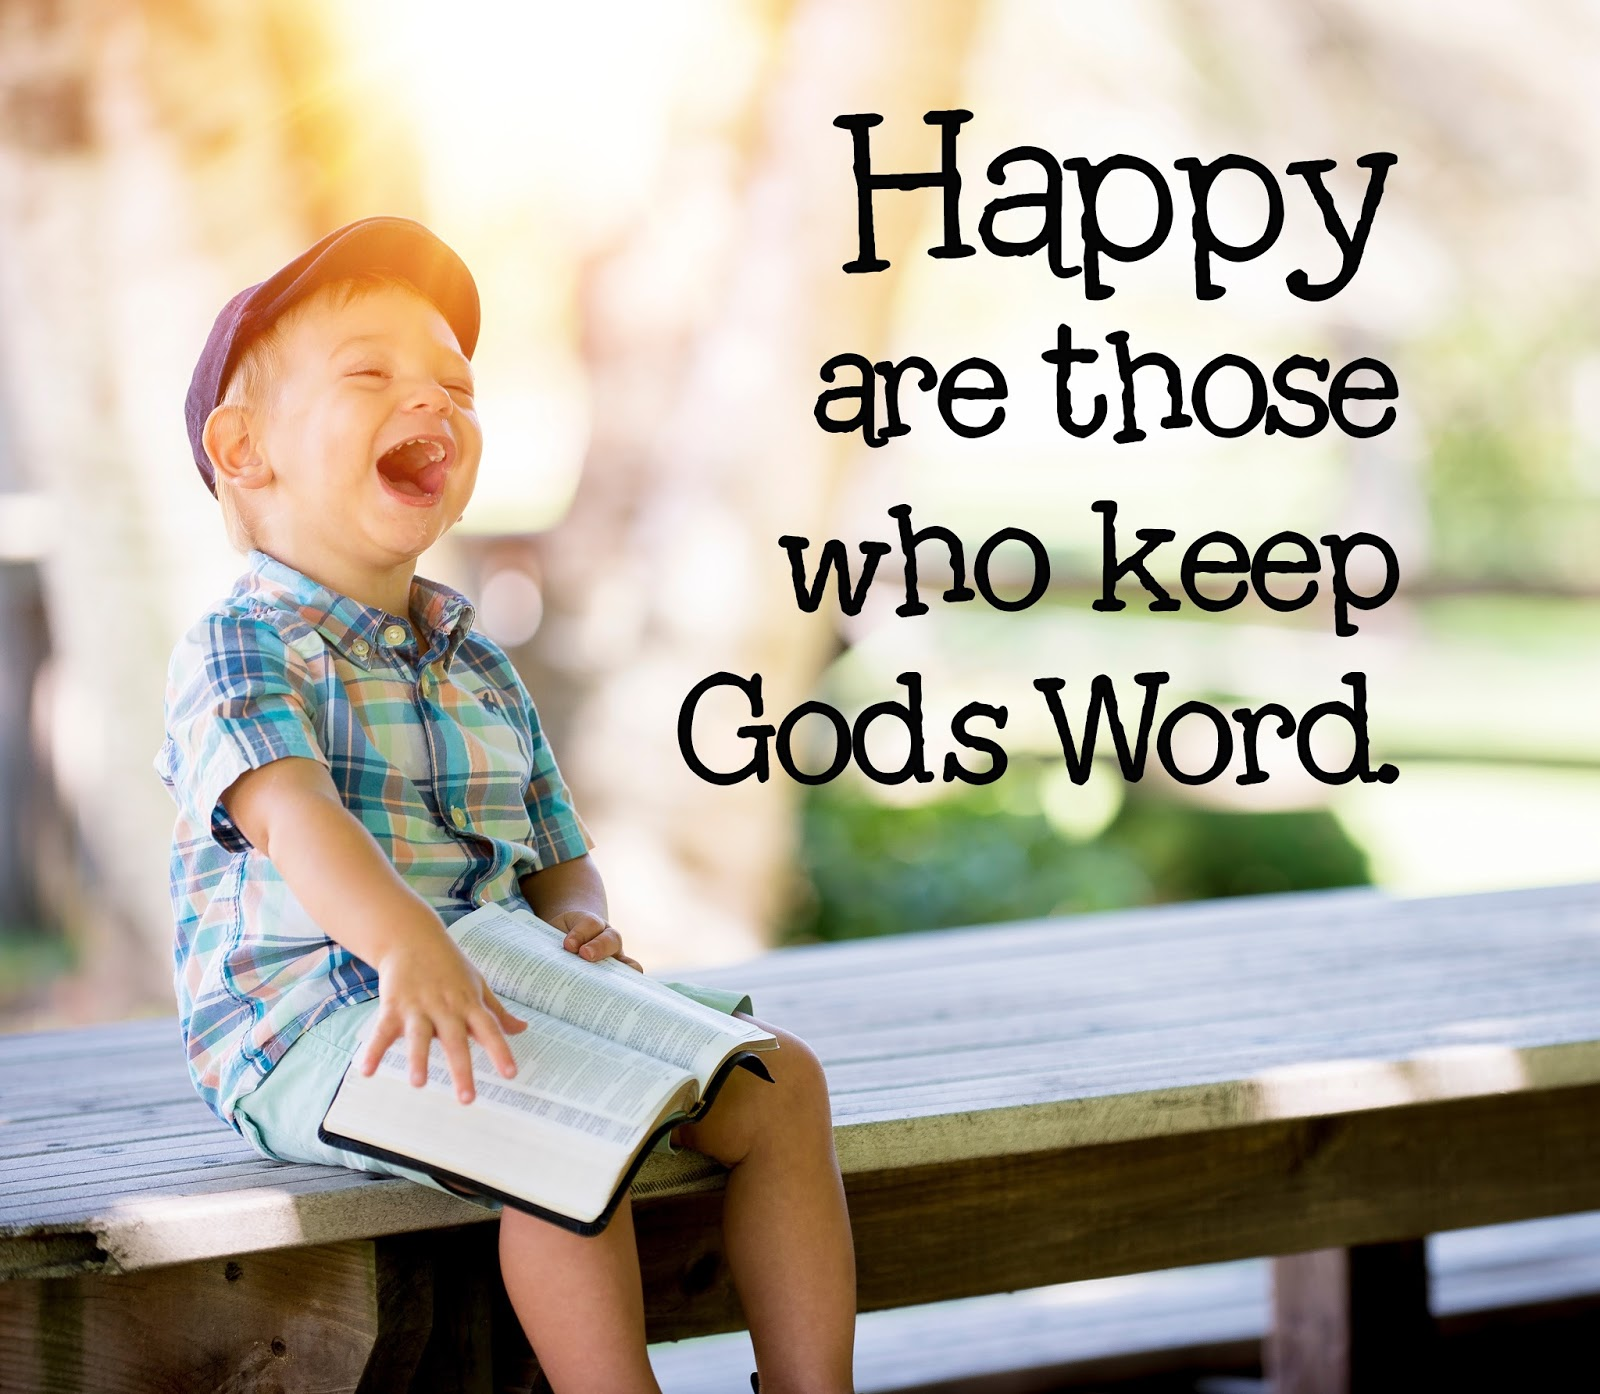 Happy are those who keep gods word sermon from 2122017 faith happy are those who keep gods word sermon from 2122017 ccuart Image collections